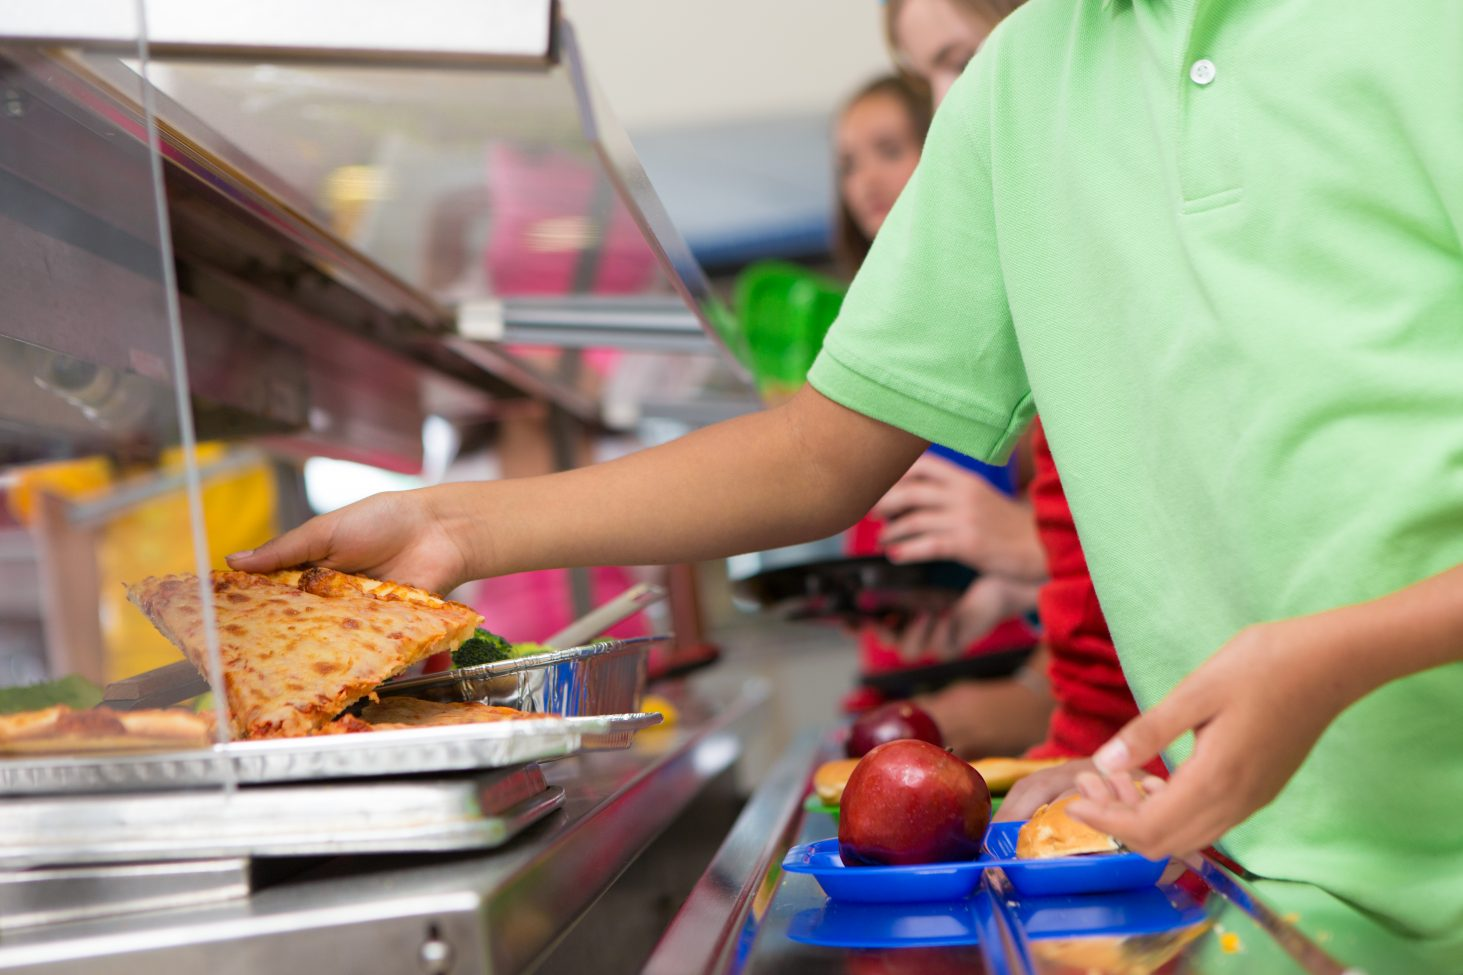 Boy choosing piece of pizza in the school lunch line